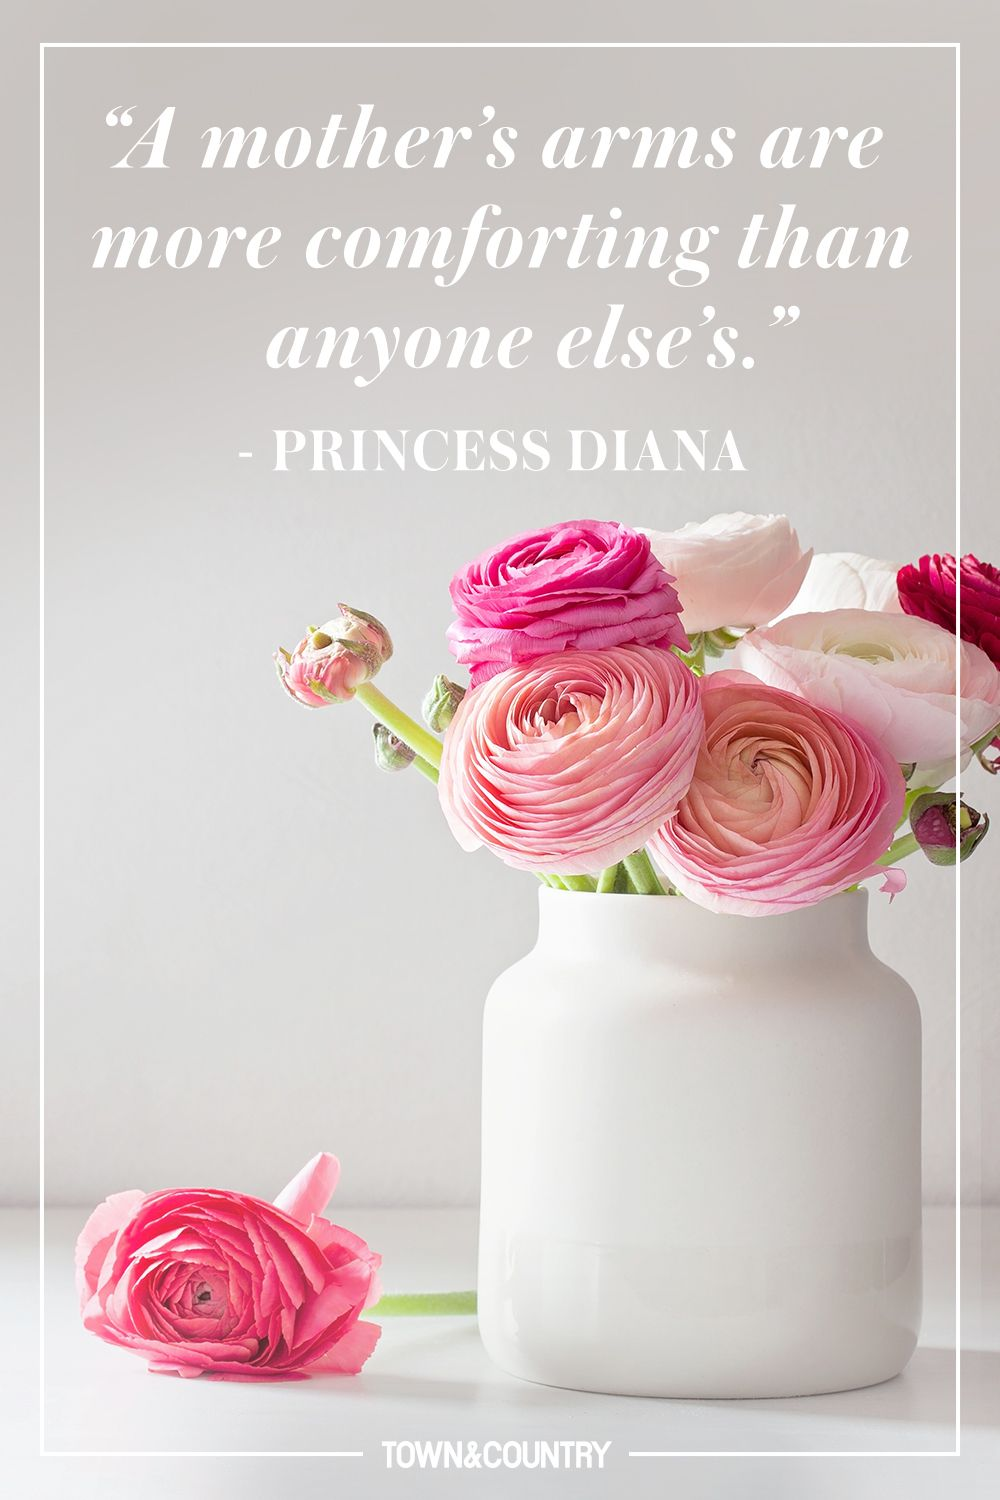 """""""A mother's arms are more comforting than anyone else's."""" - Princess Diana"""